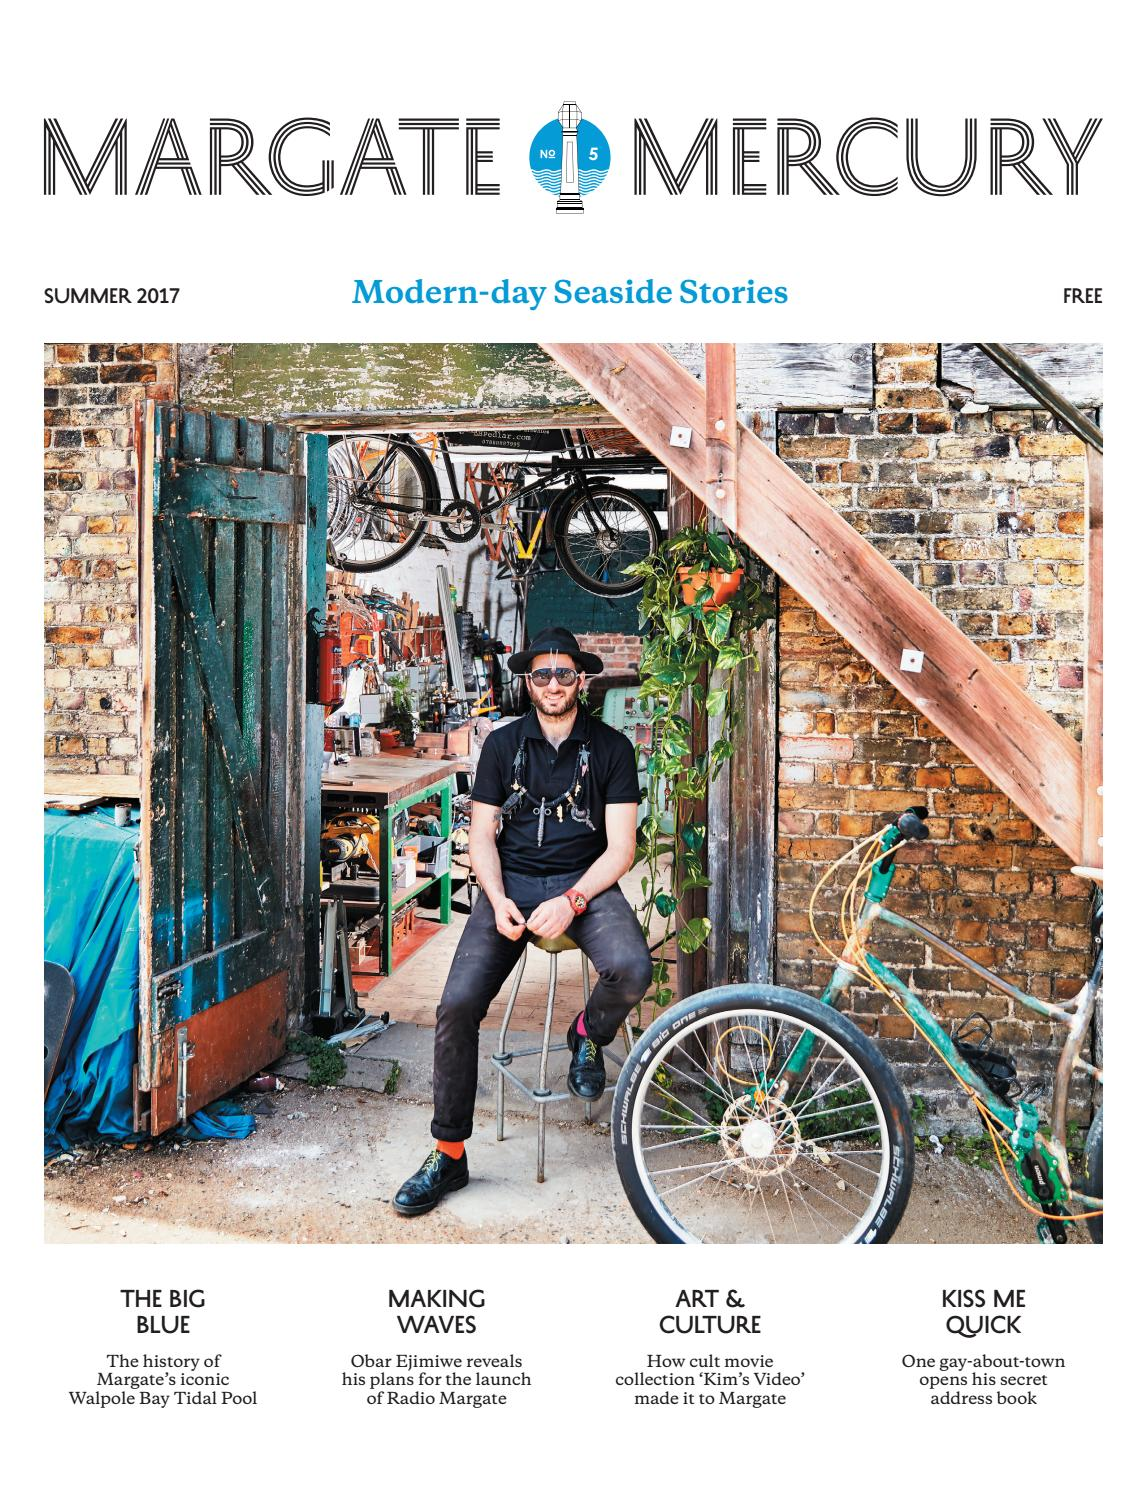 Arte Johnson On Bike Margate Mercury Summer 2017